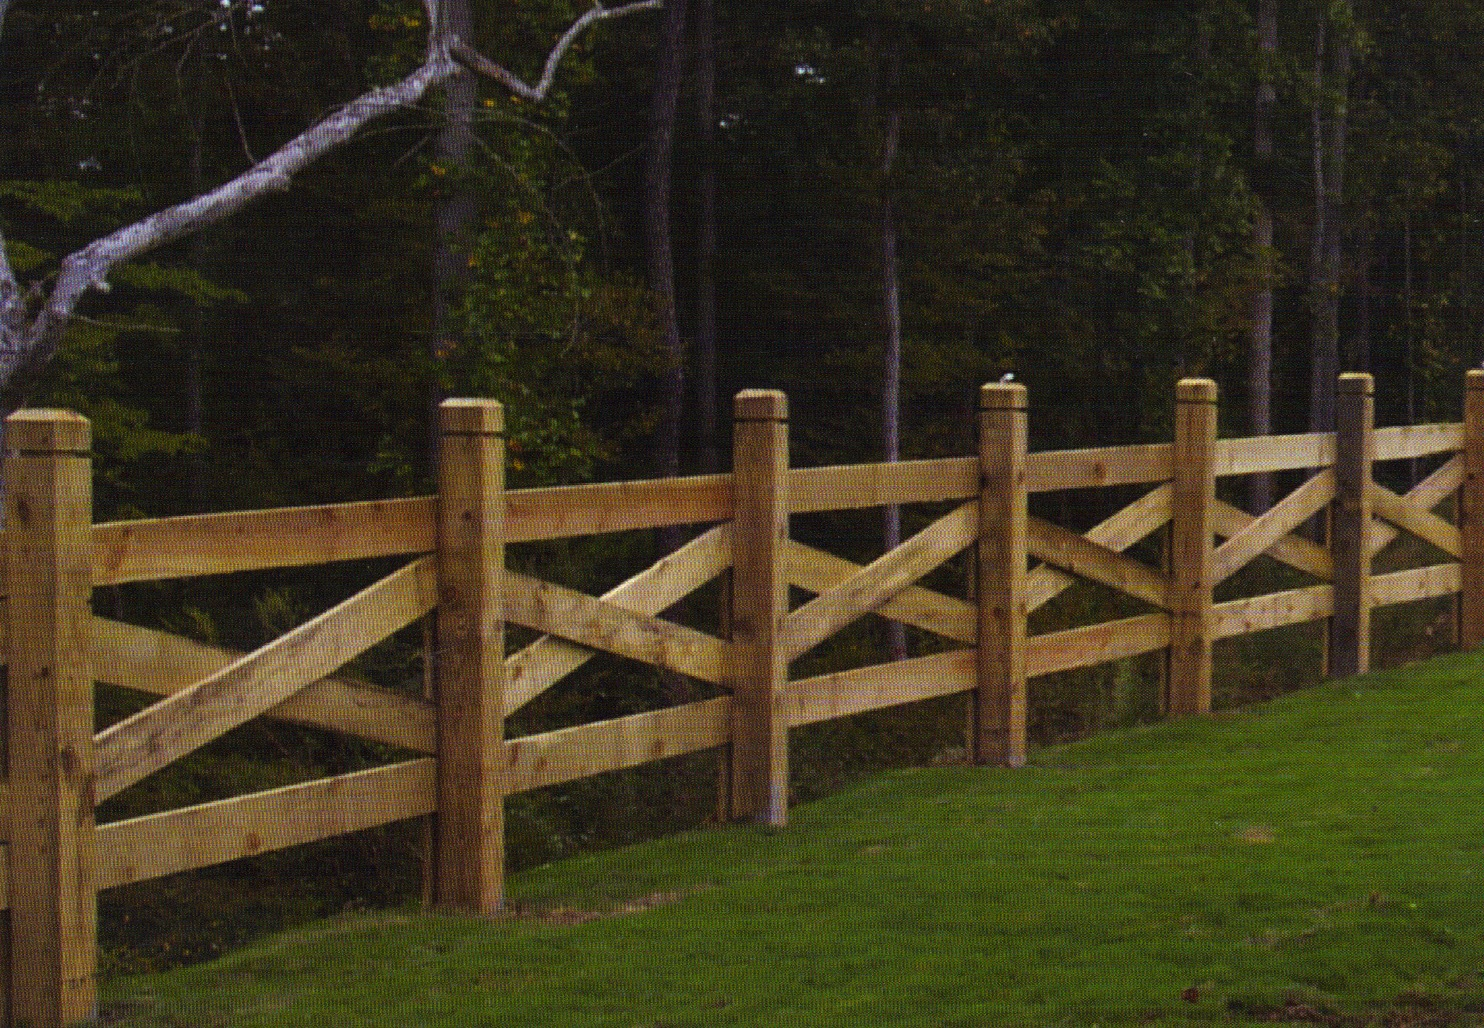 Pine Sawbuck Fence With Decorative Posts